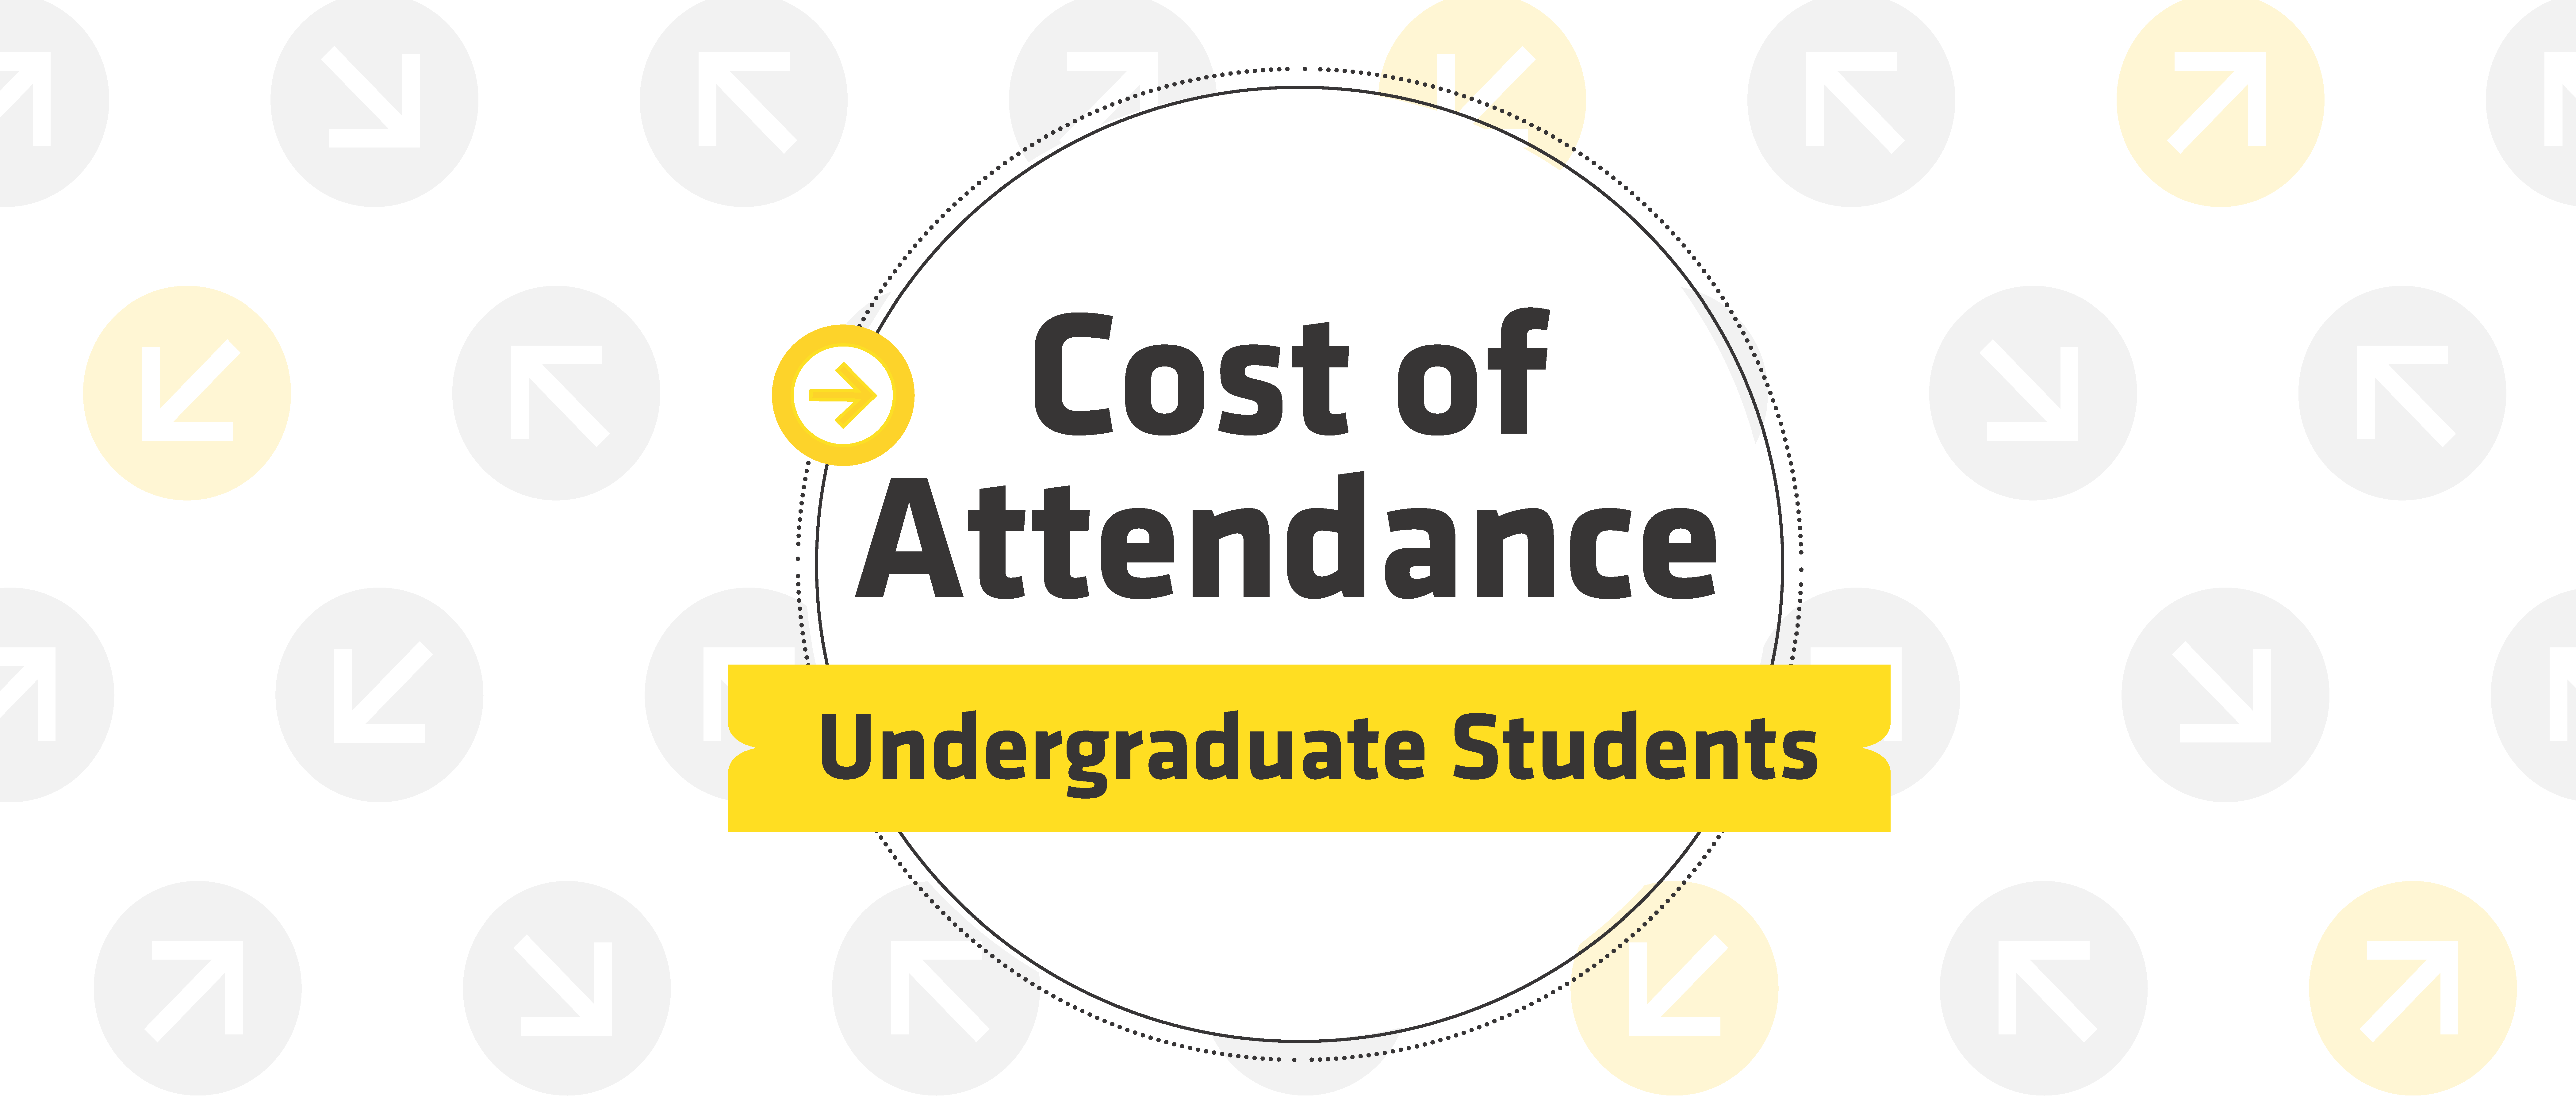 Cost of Attendance - Undergraduate Students with circles and arrows